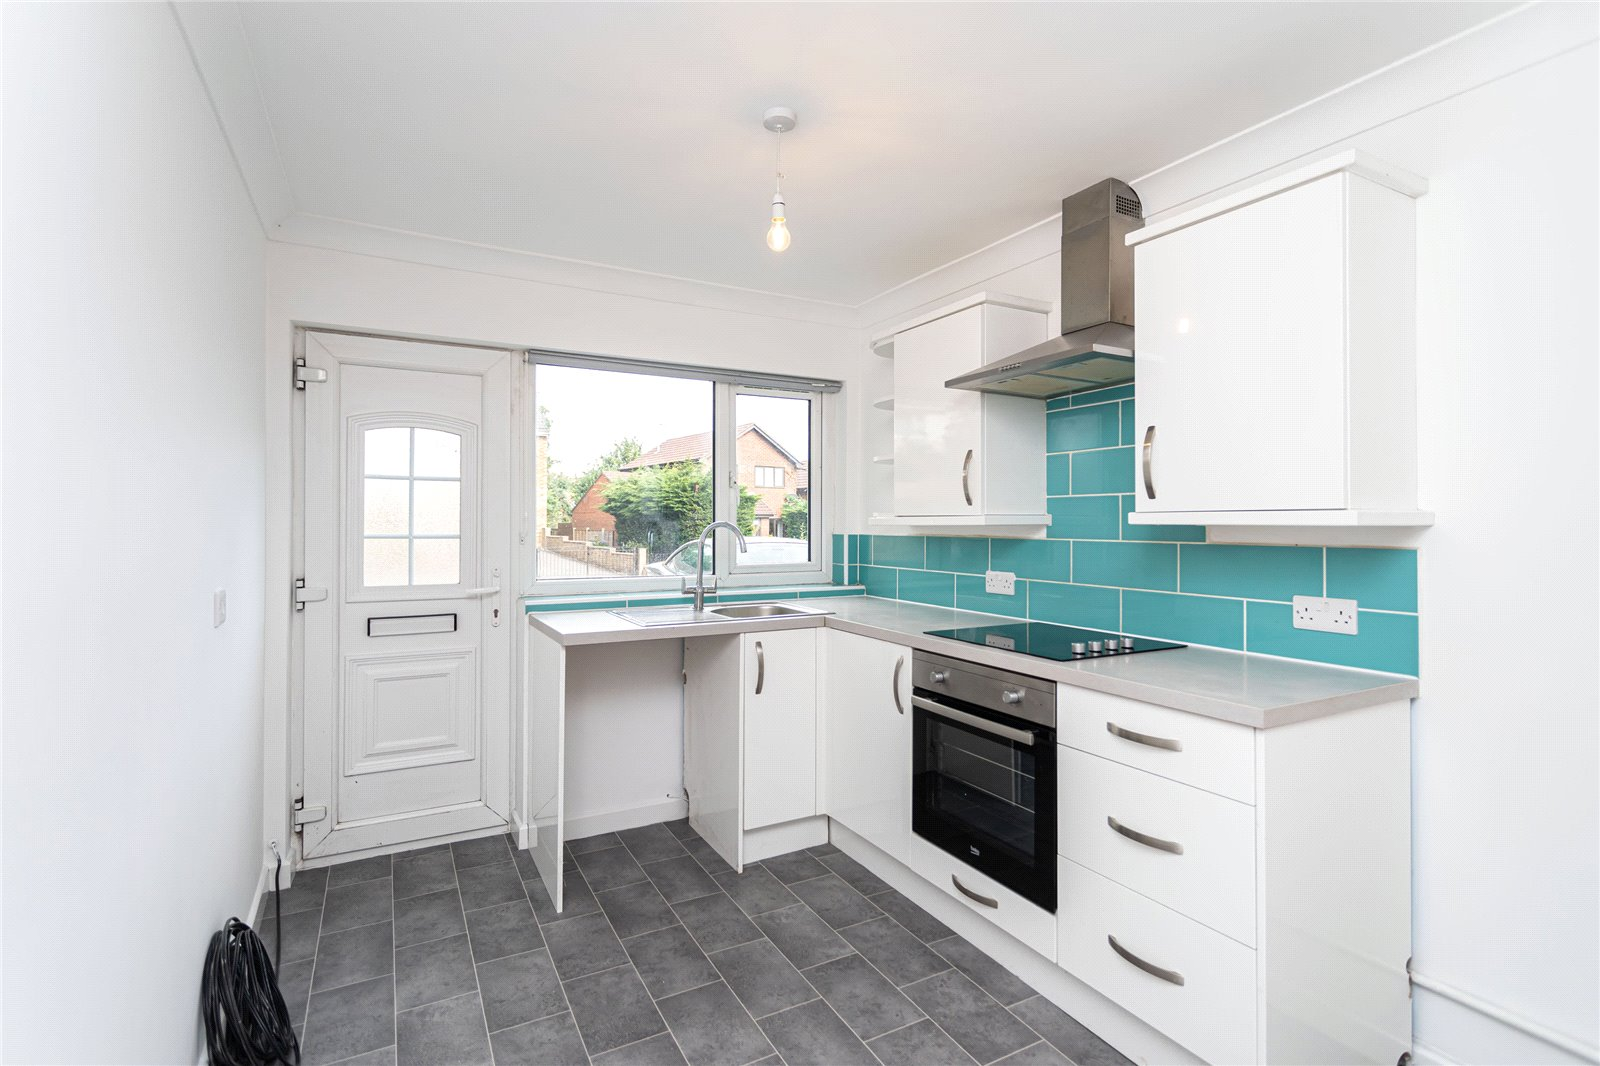 2 bed house for sale in Northmere Road, Poole - Property Image 1